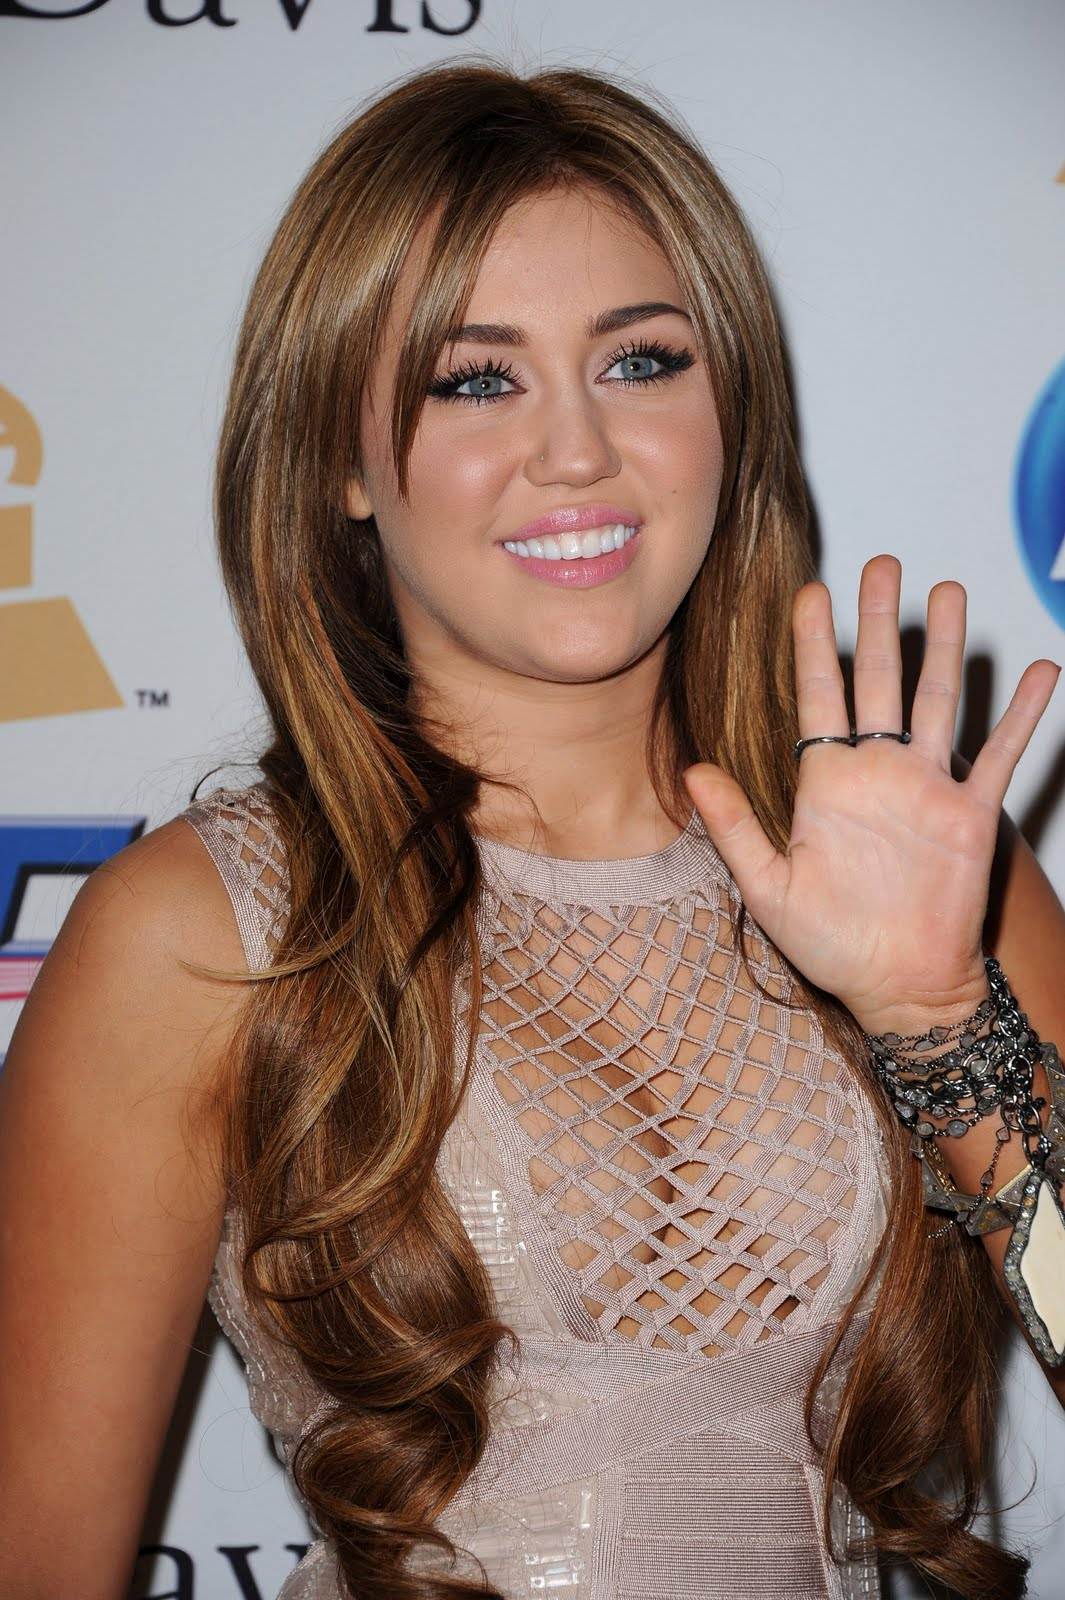 Image for miley cyrus hot